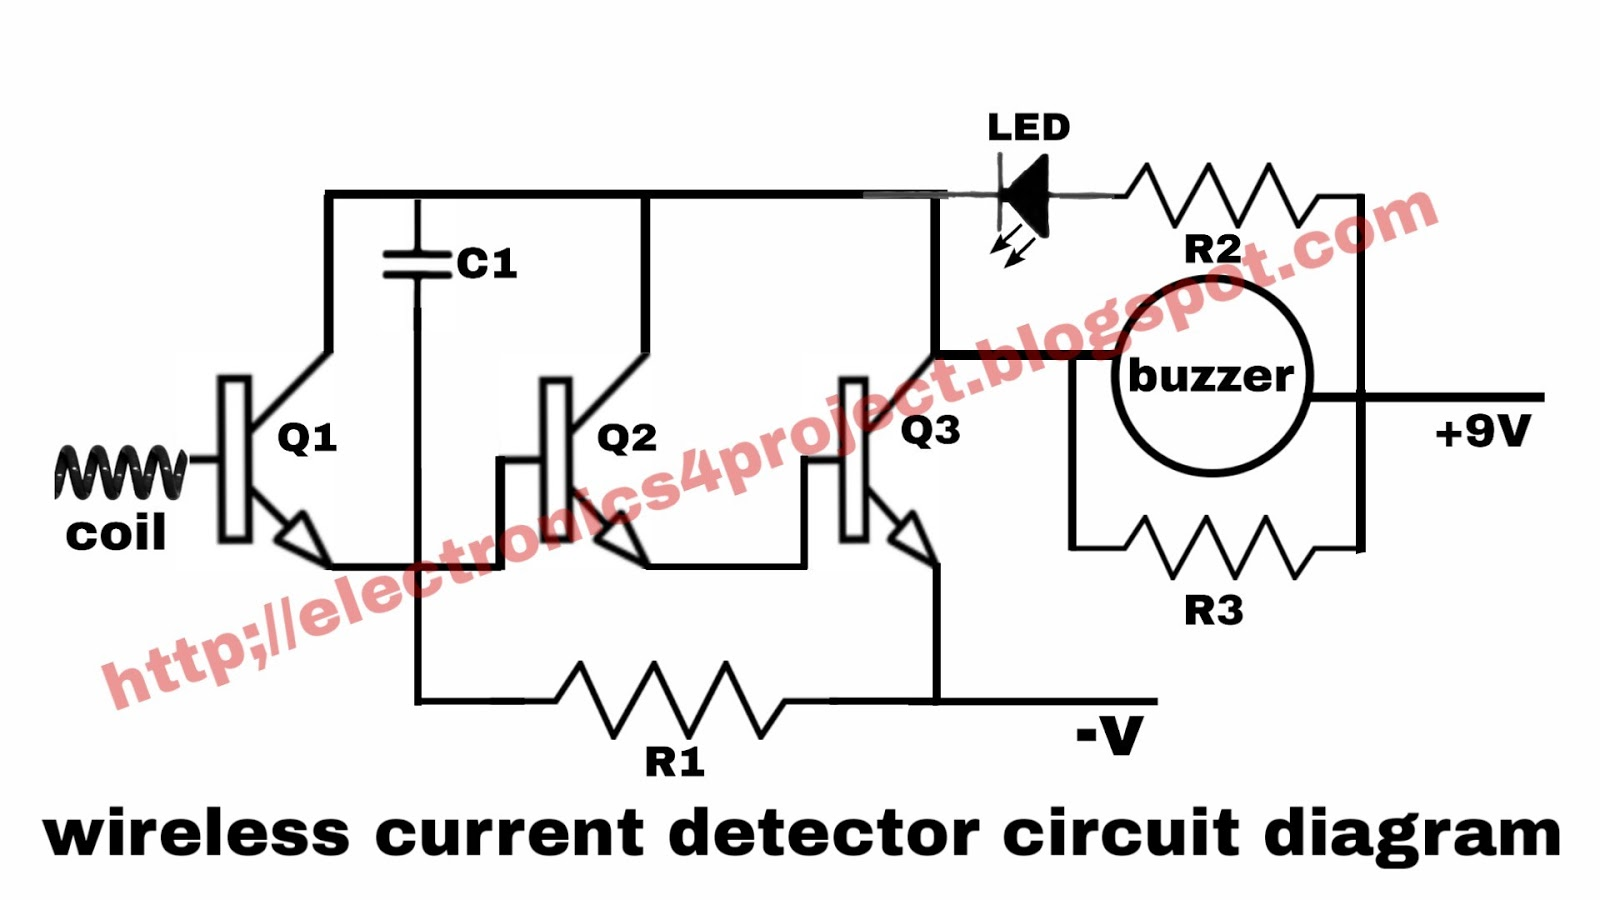 Electronics project: wireless current detector circuit diagram